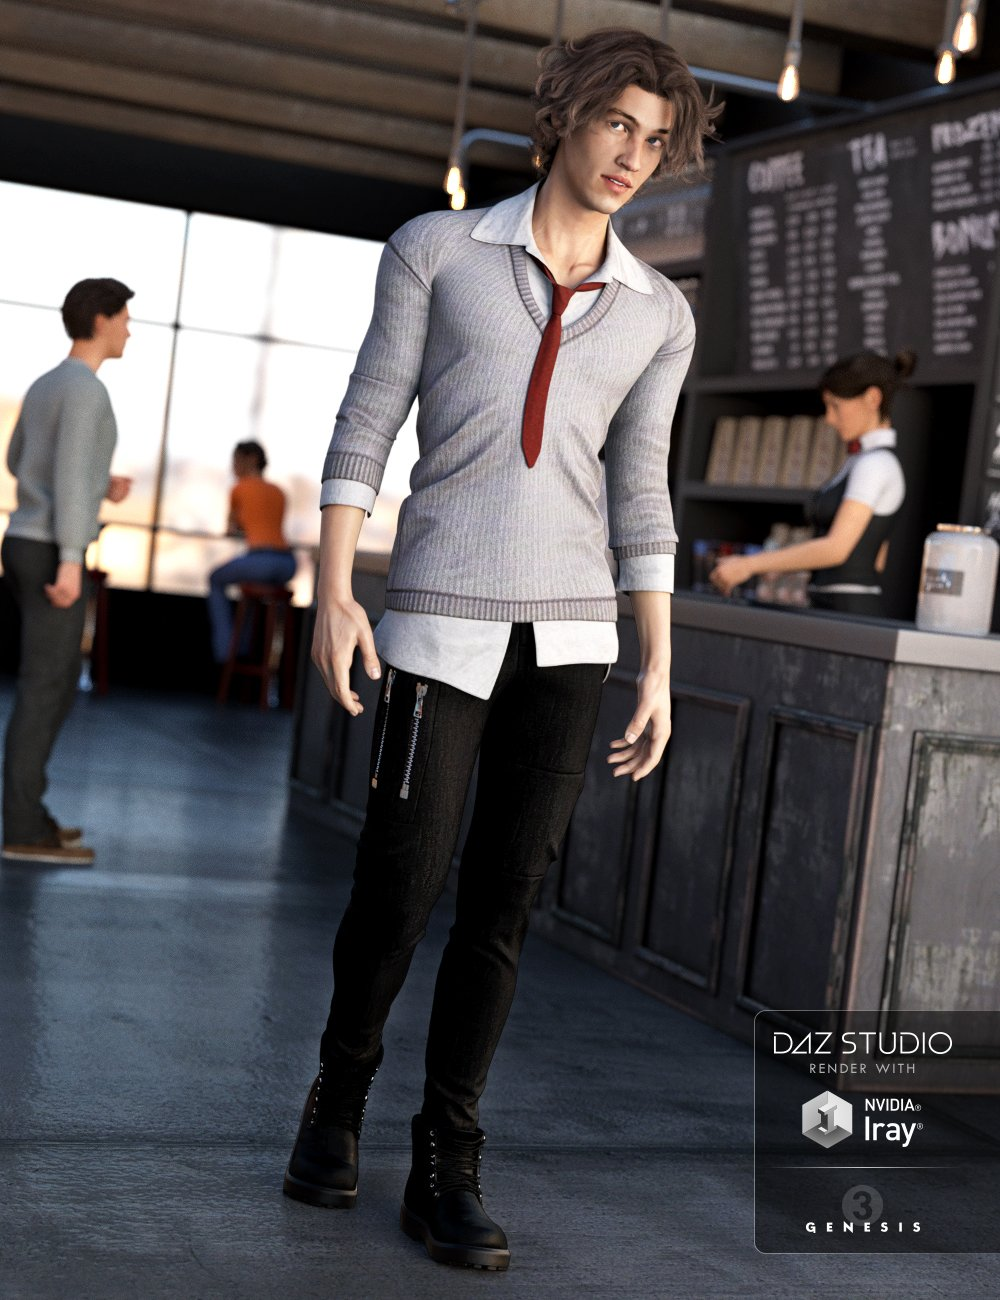 Millennial Business Casual Outfit for Genesis 3 Male(s) by: NikisatezLuthbellina, 3D Models by Daz 3D